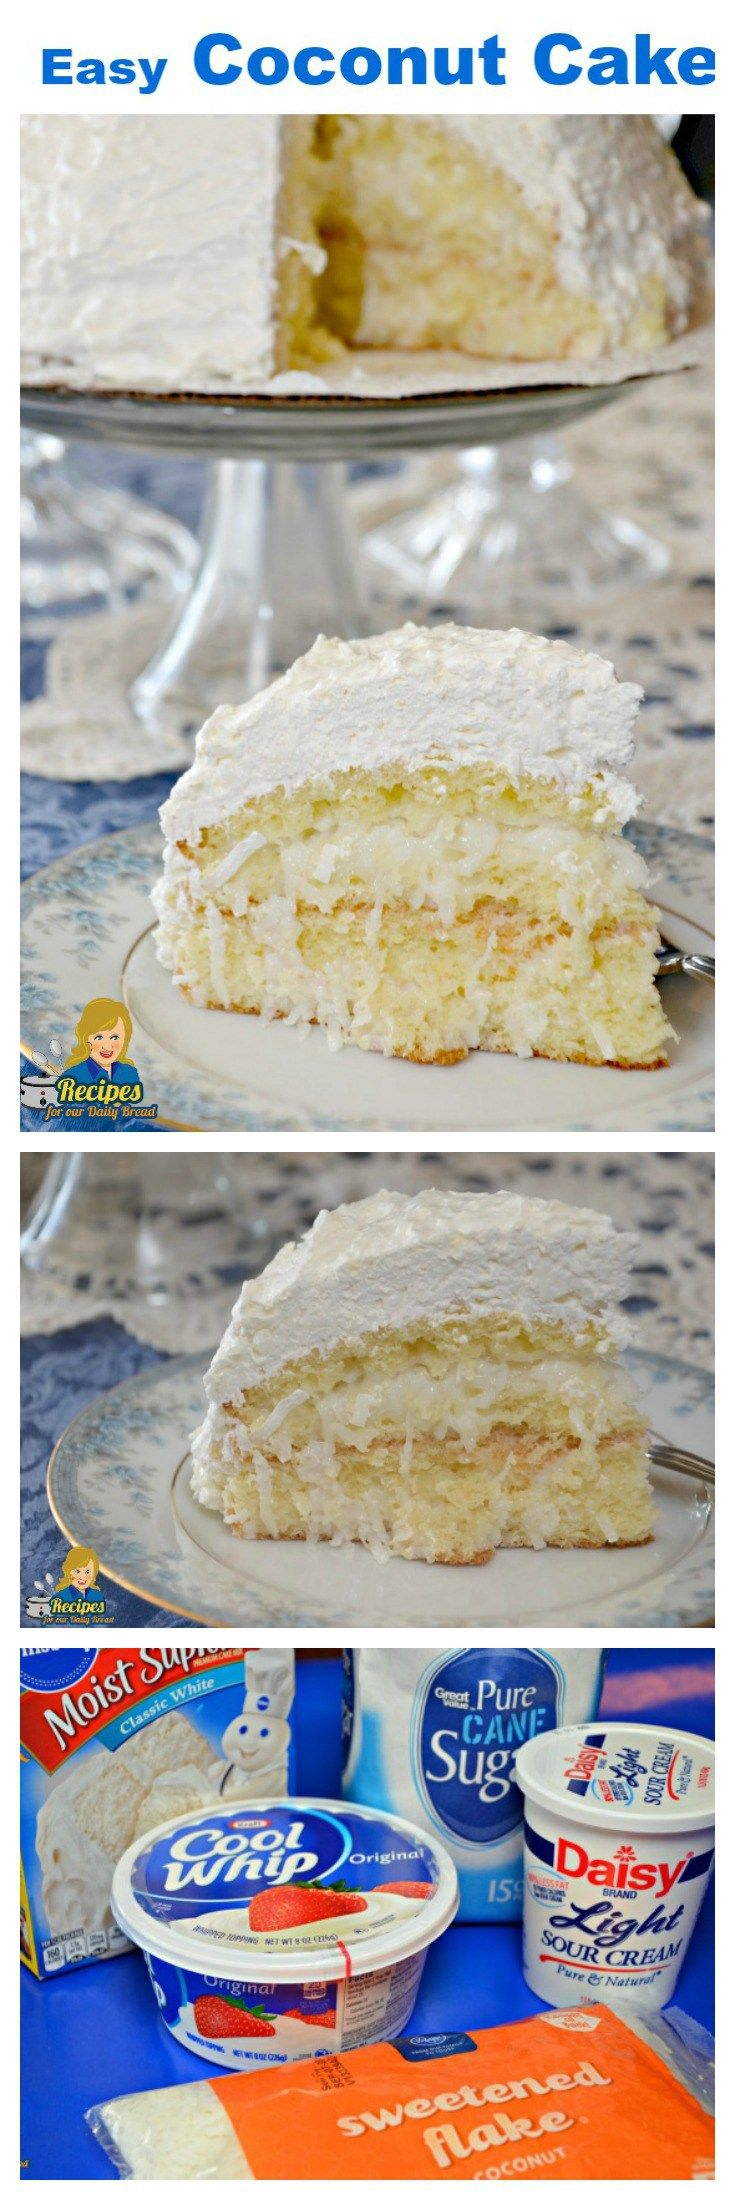 Easy Coconut Cake 5 Simple Ingredients For Scrumptious Cake Recipe Coconut Recipes Coconut Cake Recipe Sour Cream Coconut Cake